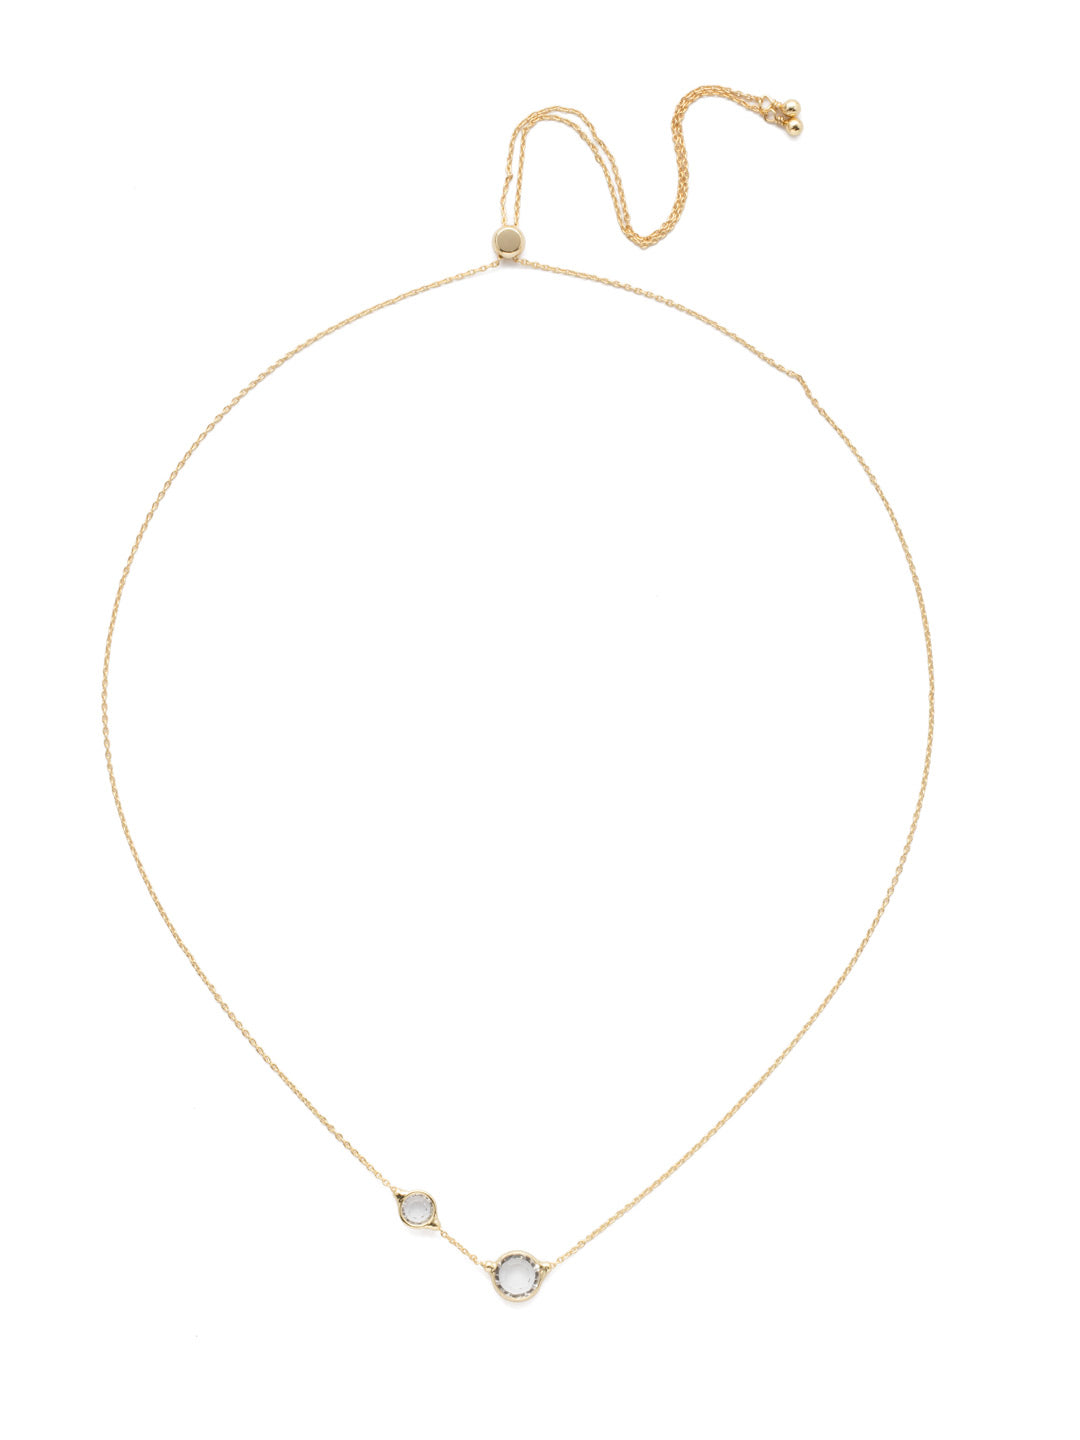 Brunetta Pendant Necklace - 4NEN2BGCRY